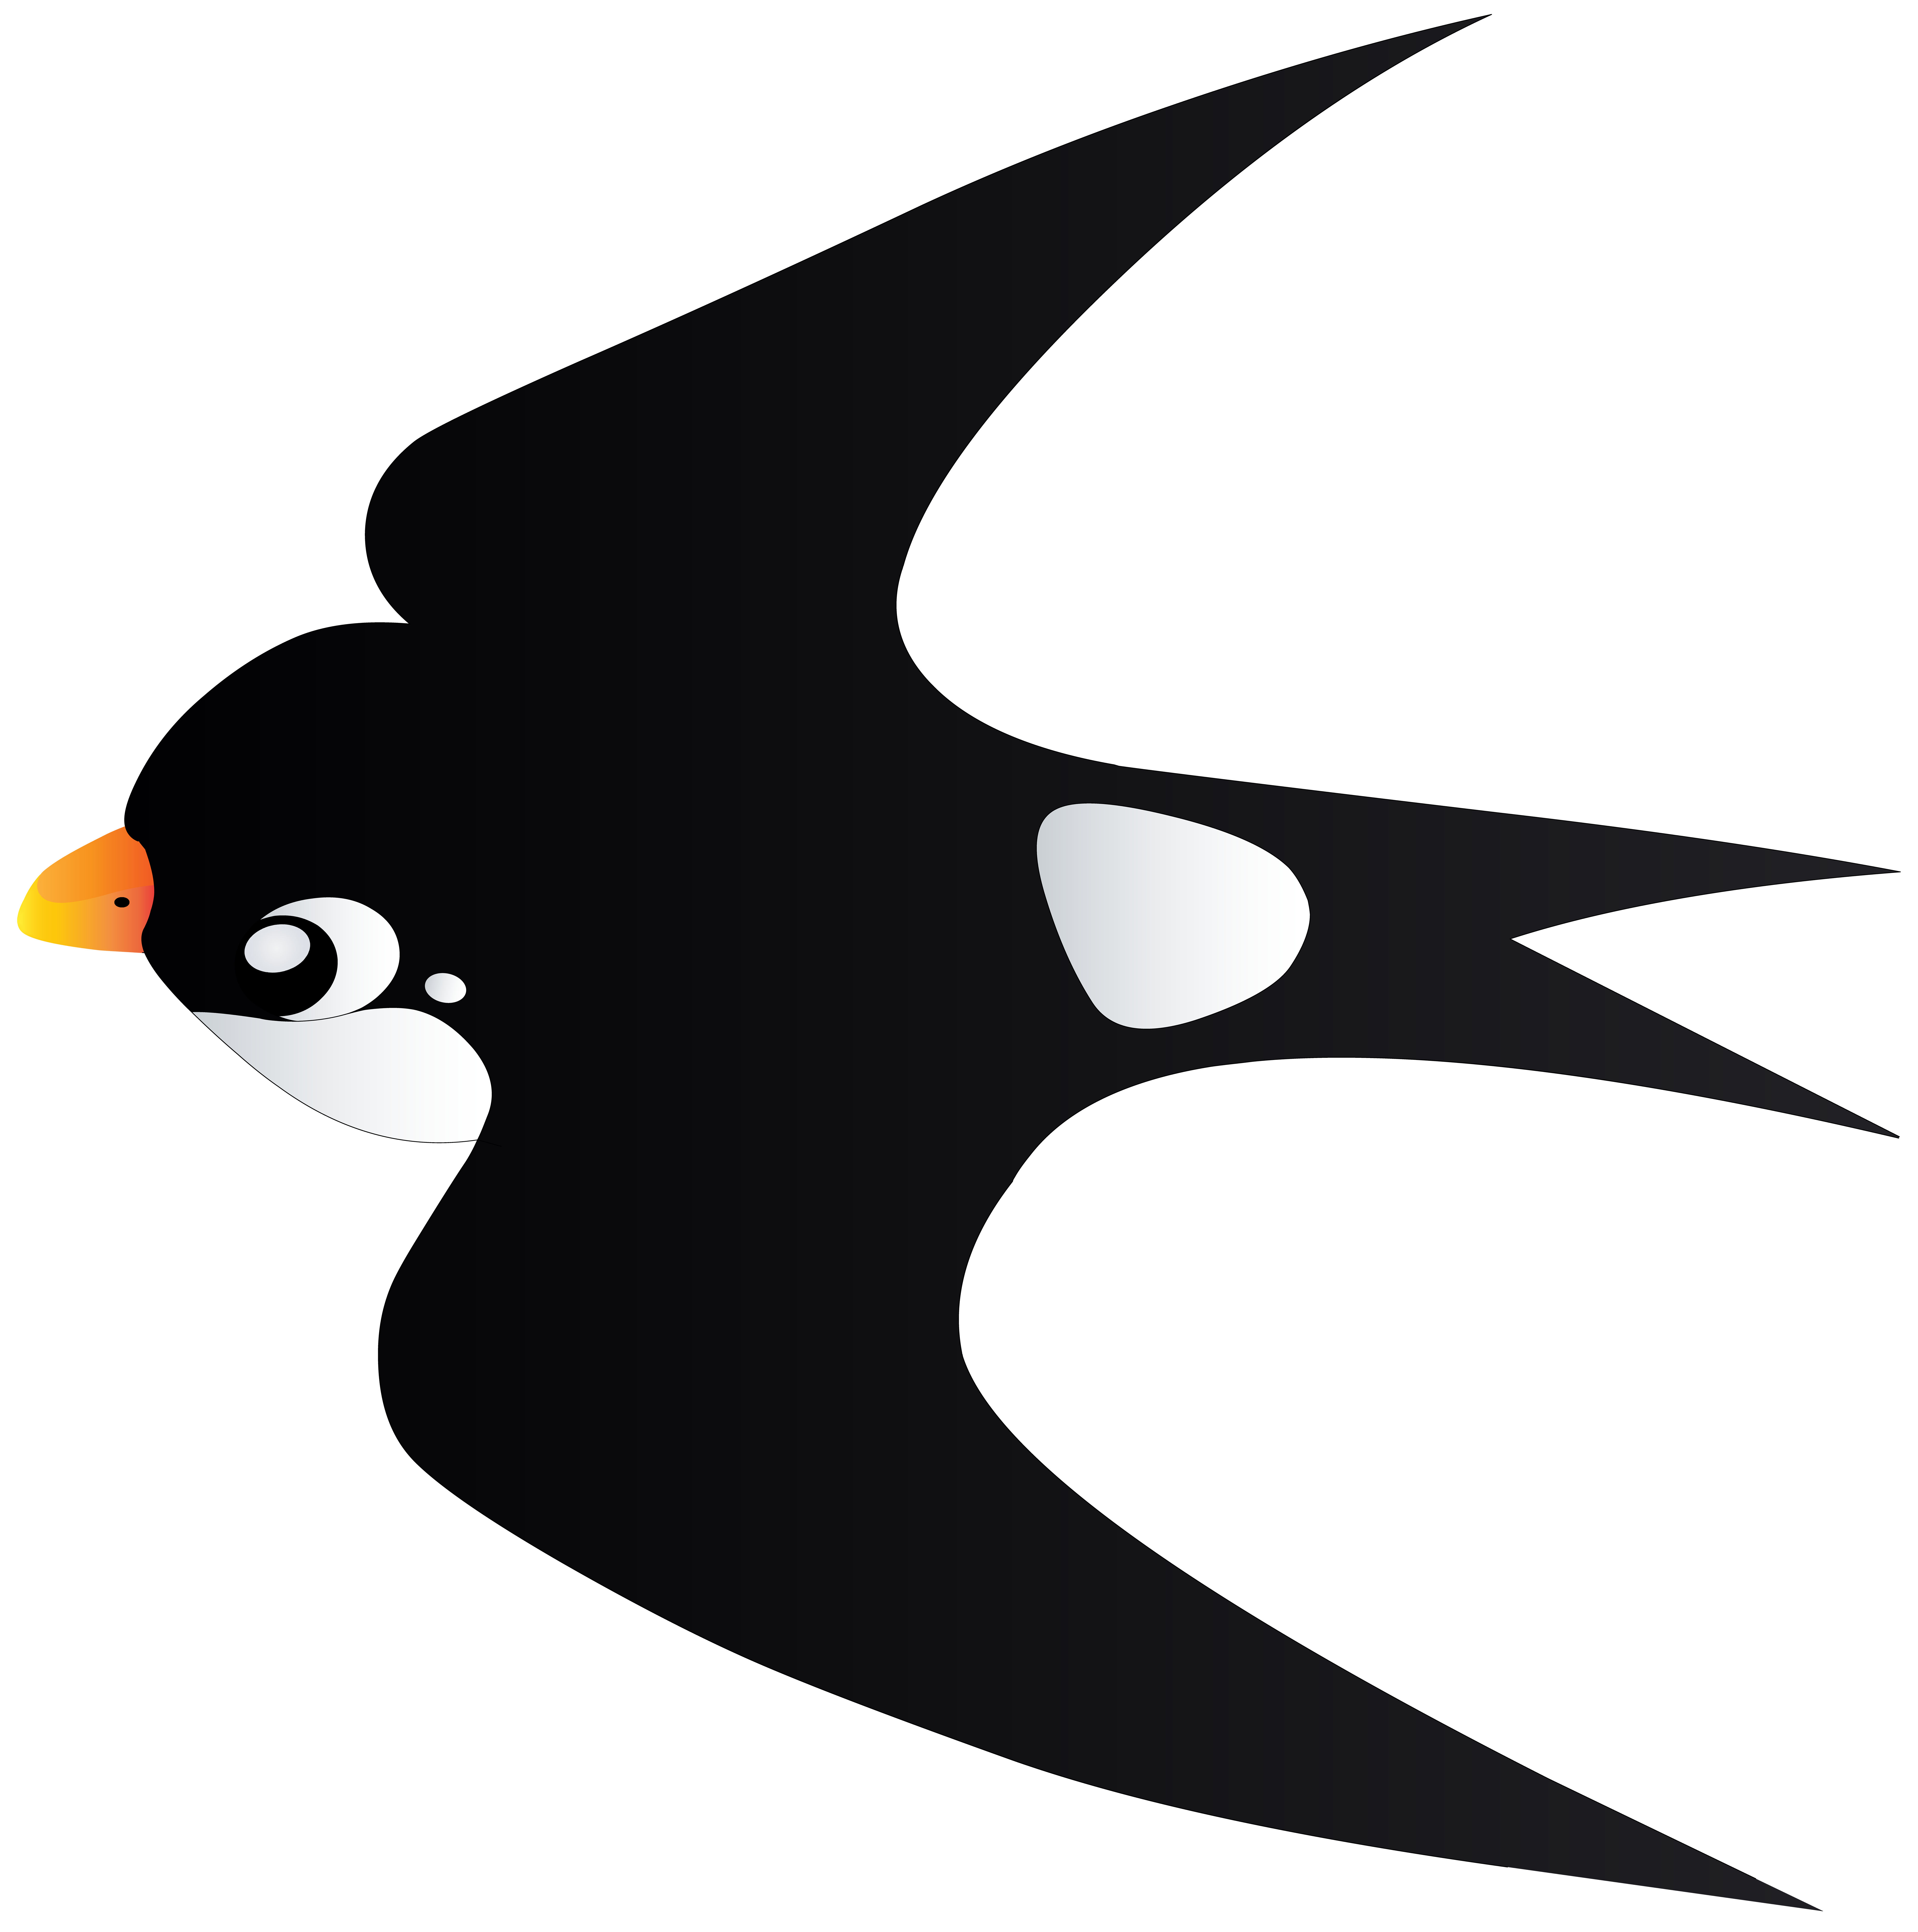 Bird cartoon png. Swallow transparent image gallery